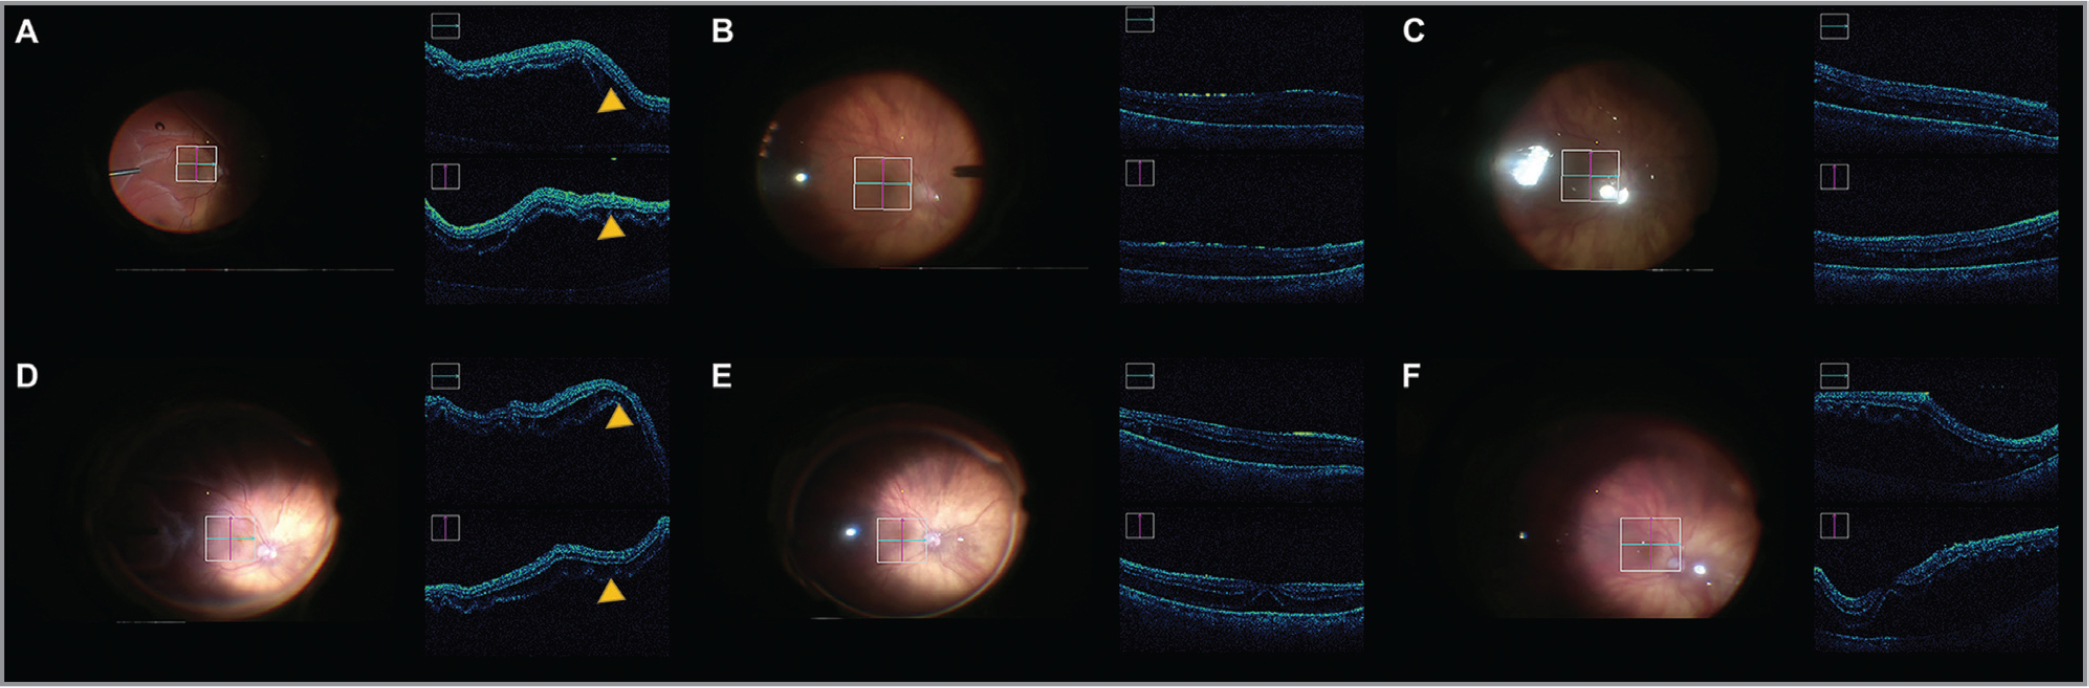 Intraoperative optical coherence tomography (iOCT) images of the macula in eyes that underwent vitrectomy with perfluoro-n-octane (PFO) infusion for a macula-off rhegmatogenous retinal detachment (RRD). iOCT images for eyes with a macula-off RRD that had a pars plana vitrectomy with PFO. Images were taken through the fovea just prior to vitrectomy (A, D), post PFO fill (B, E), and after fluid-air exchange. (C, F). Yellow arrowhead indicates subfoveal fluid.